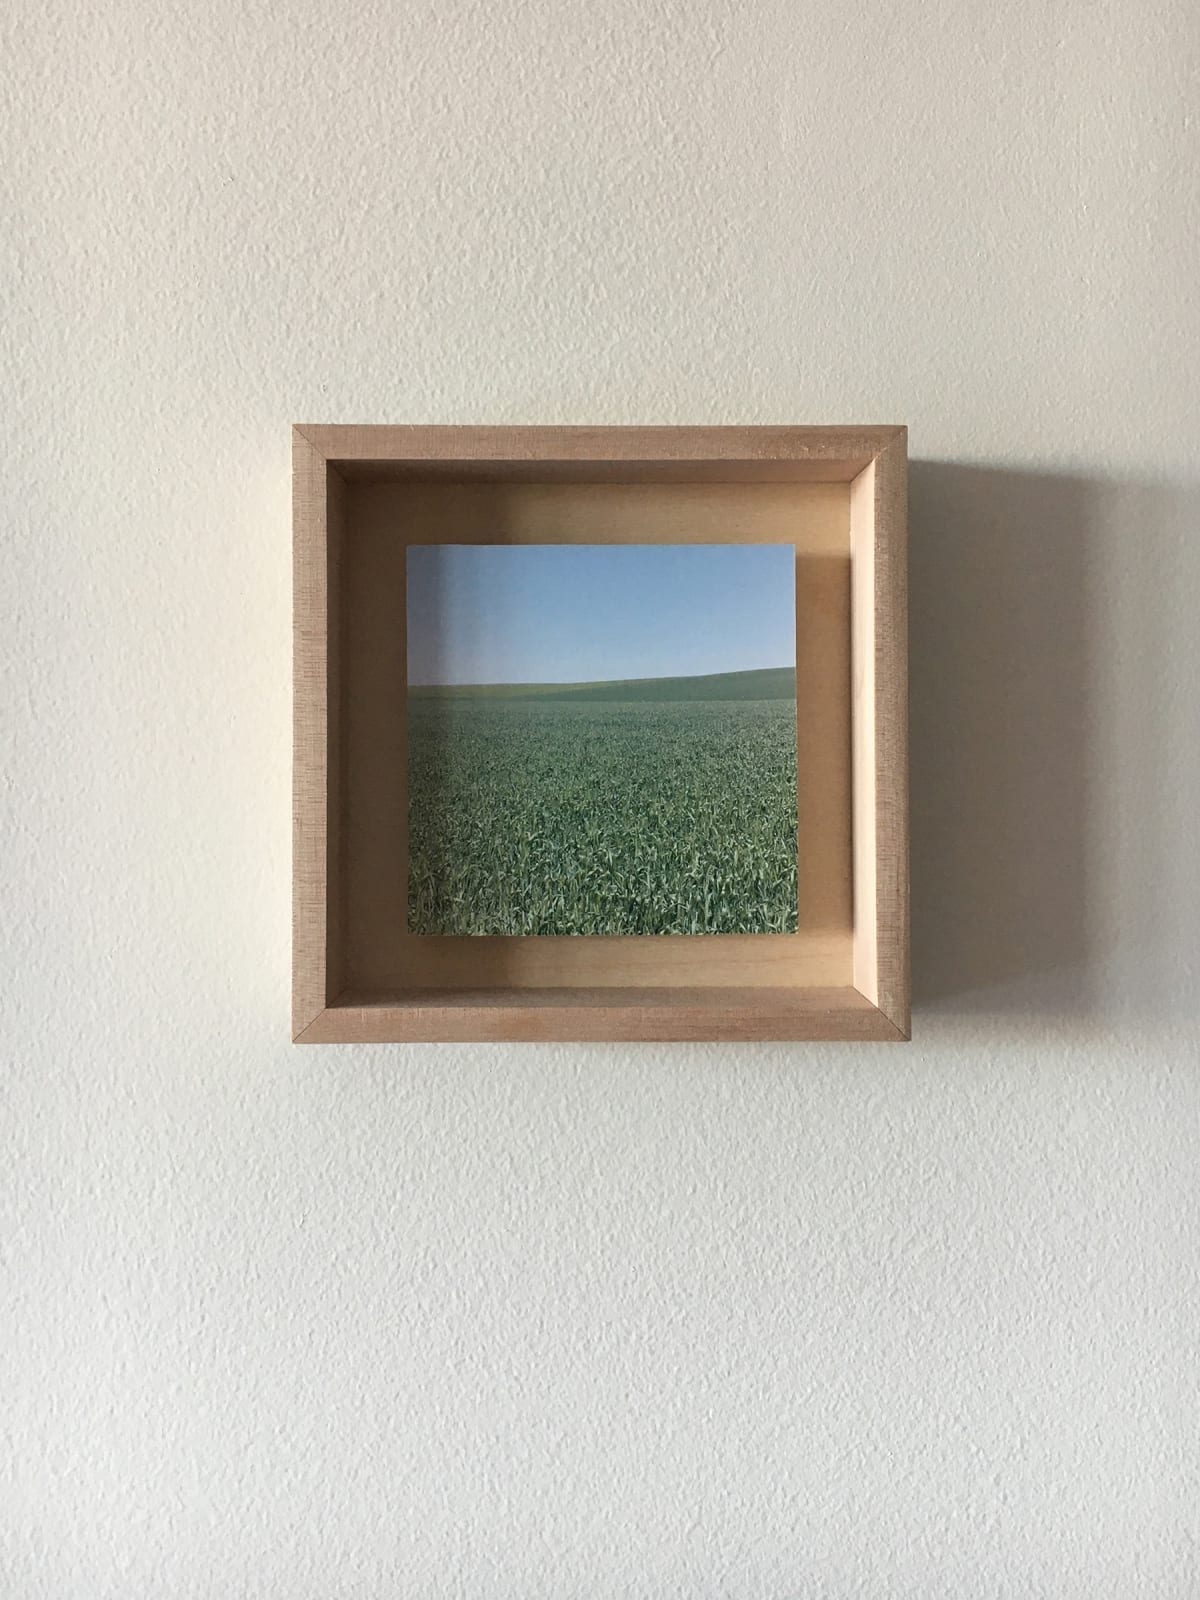 Grace Clark Sweet Fields IV, 2020 digital pigment print 6 x 6 inches, edition 1/3 $ 500.00